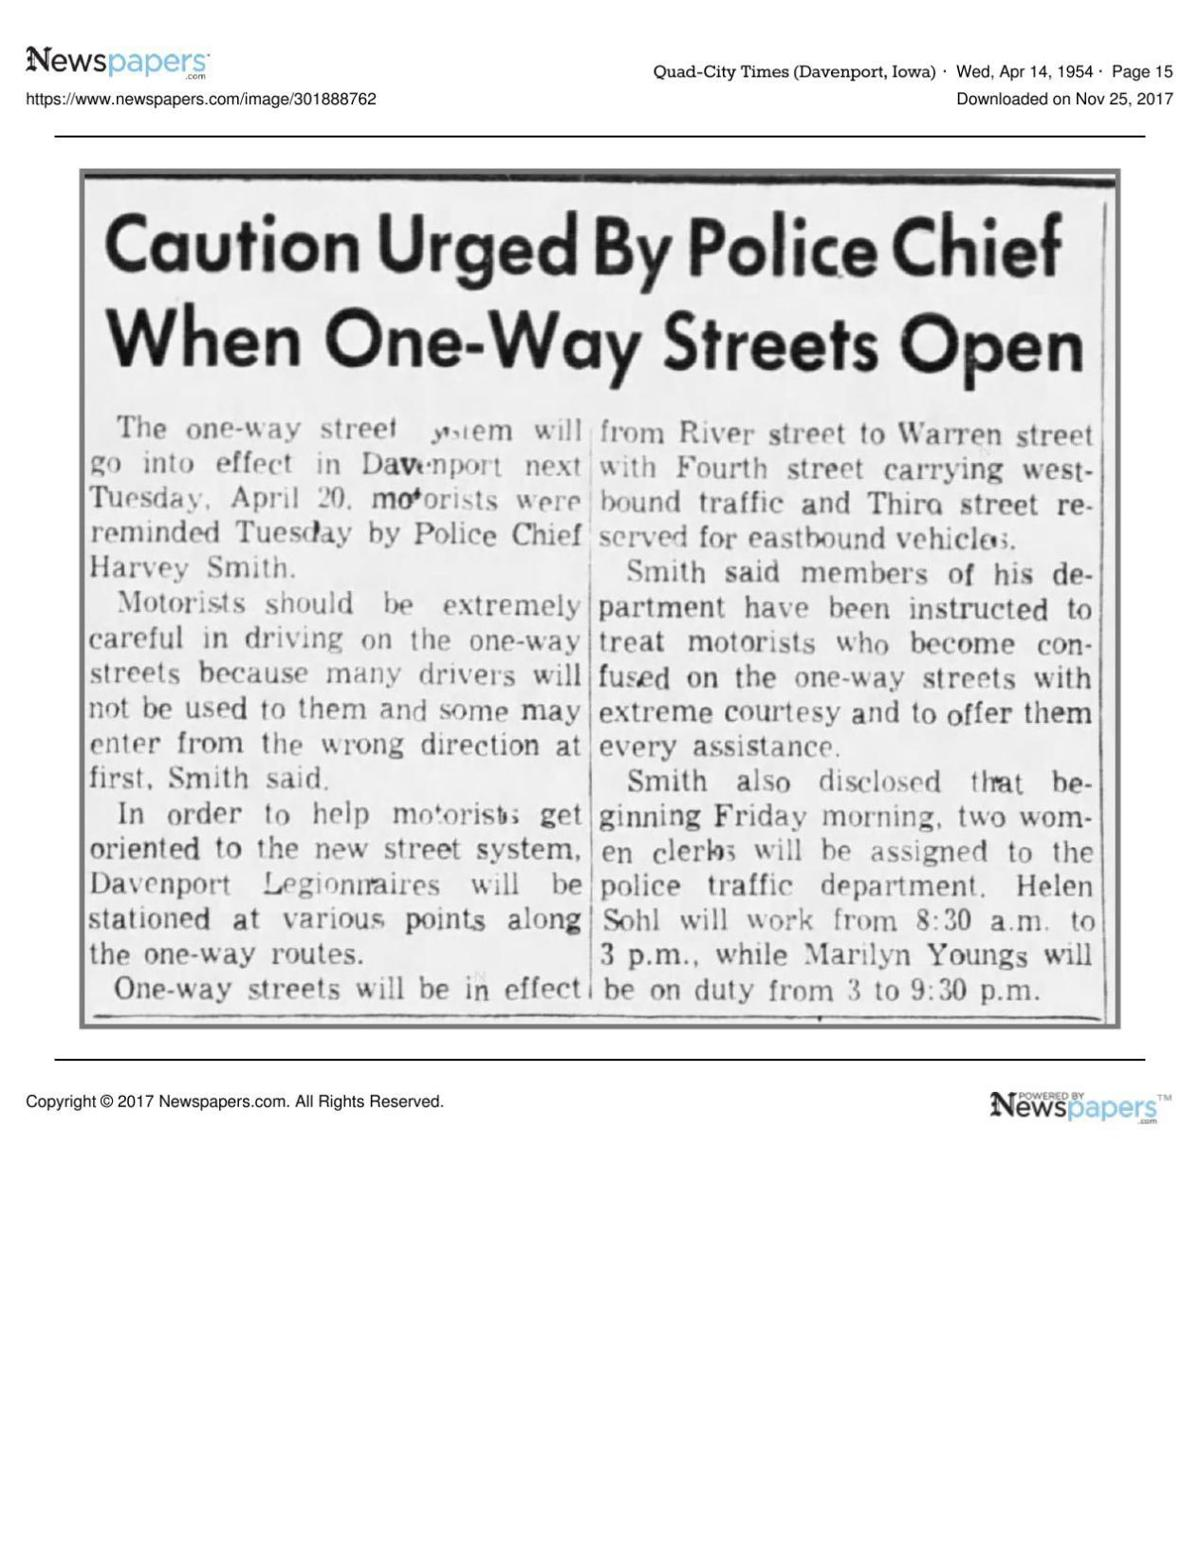 Caution Urged By Police Chief When One Way Streets Open